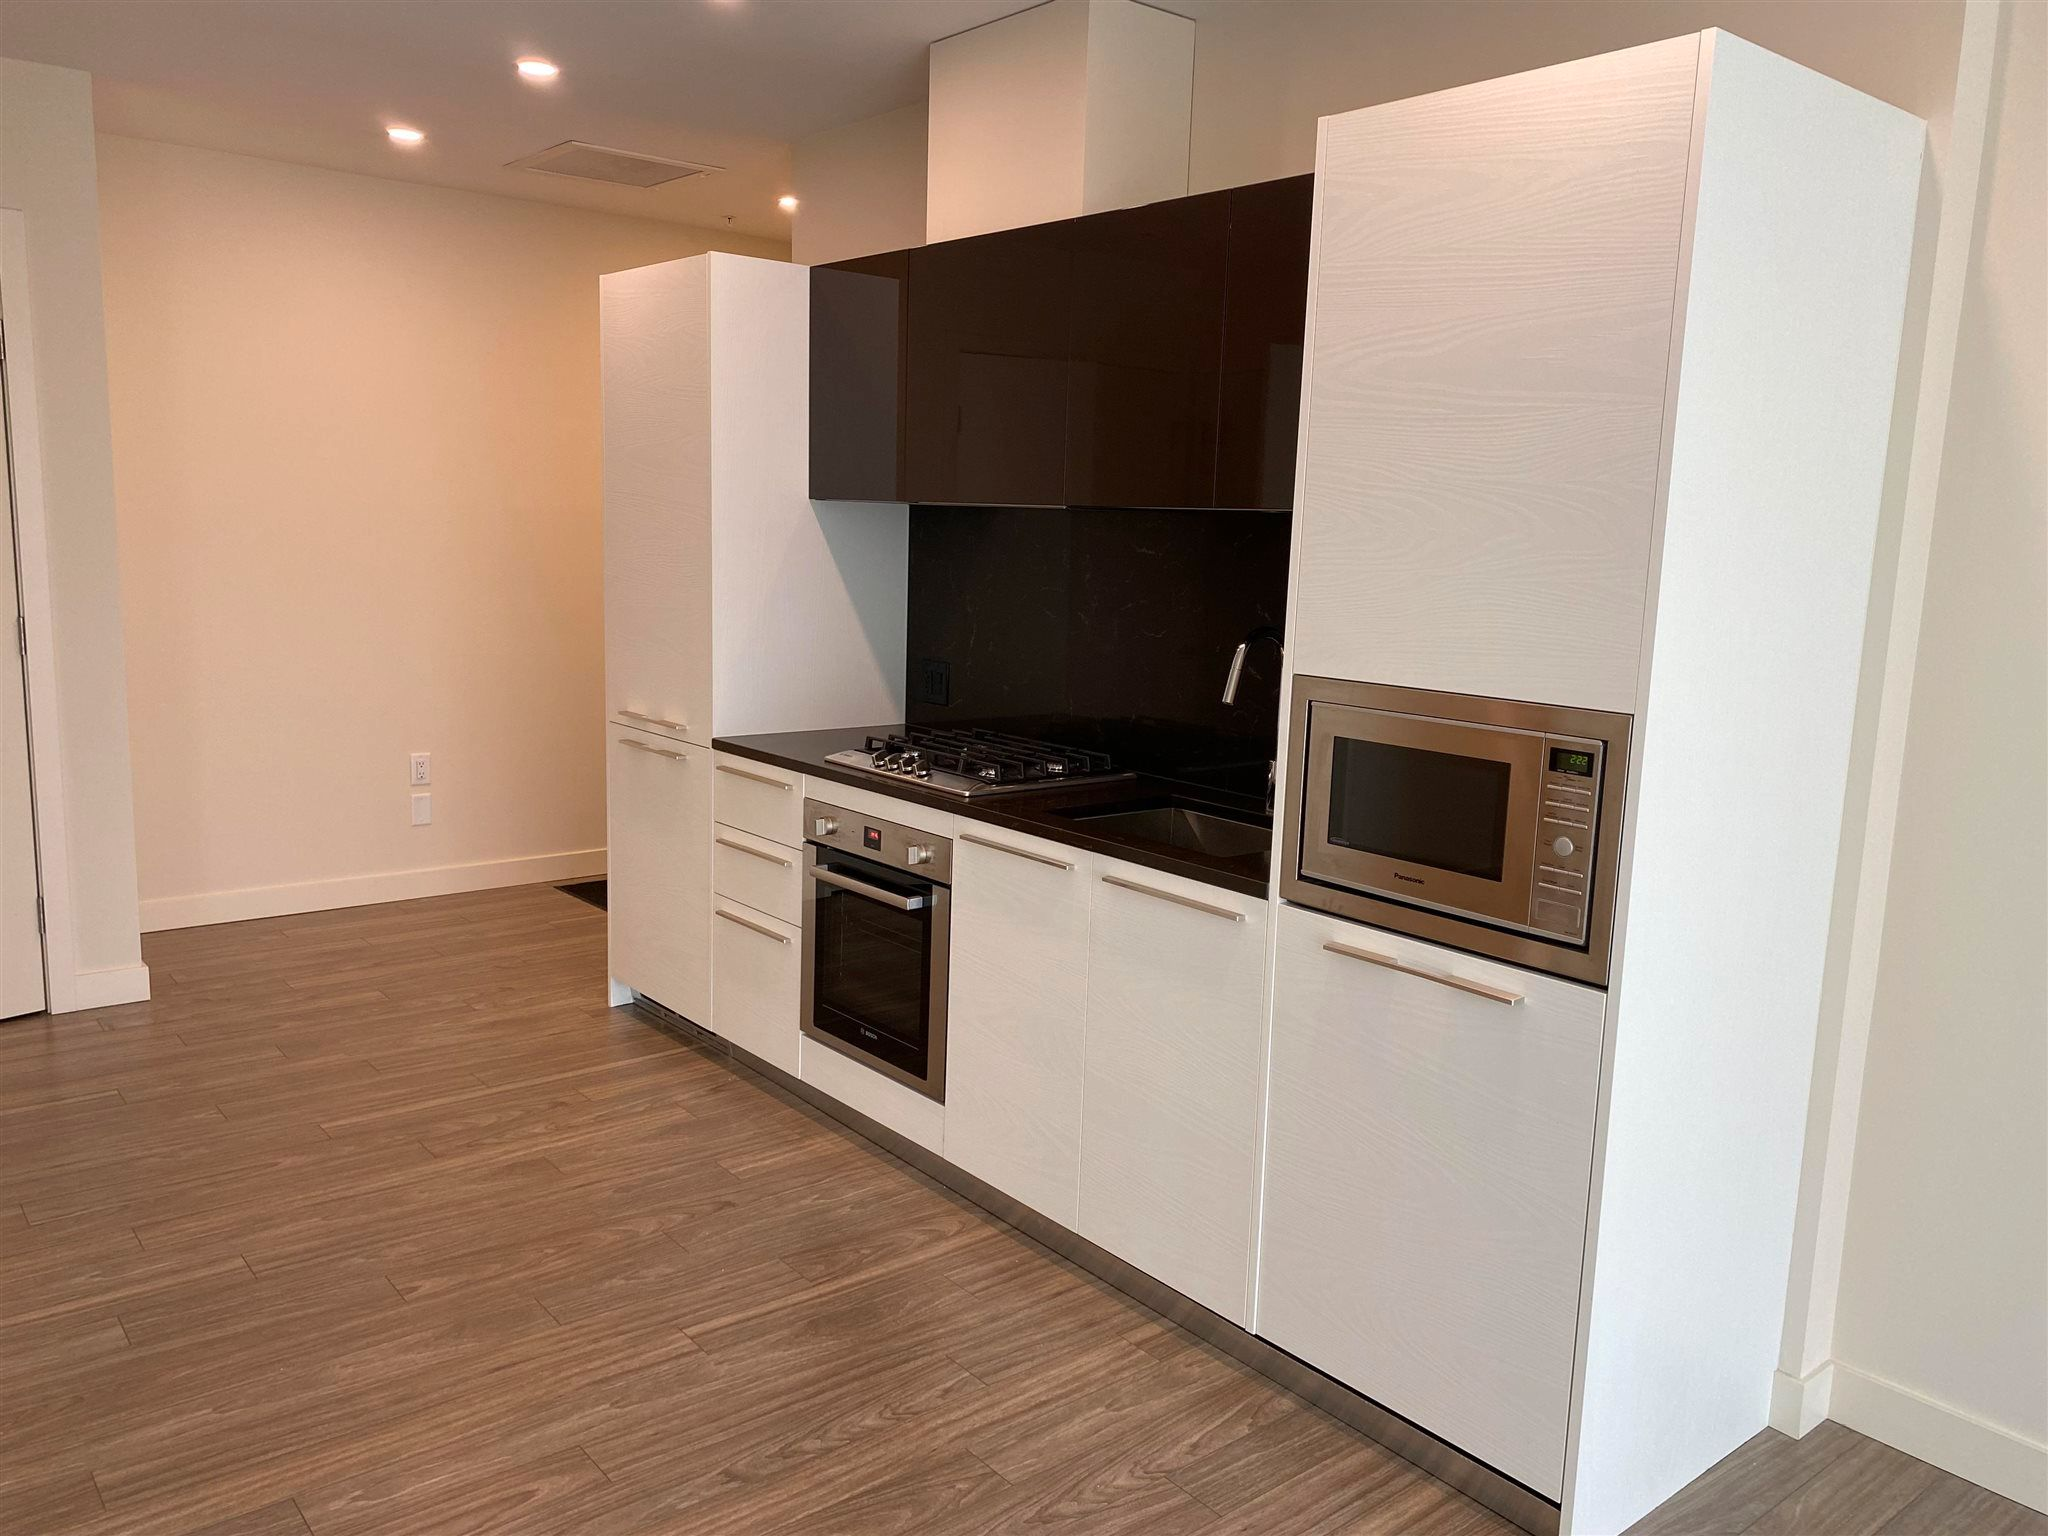 """Photo 6: Photos: 308 6288 CASSIE Avenue in Burnaby: Metrotown Condo for sale in """"GOLD HOUSE SOUTH TOWER"""" (Burnaby South)  : MLS®# R2606367"""